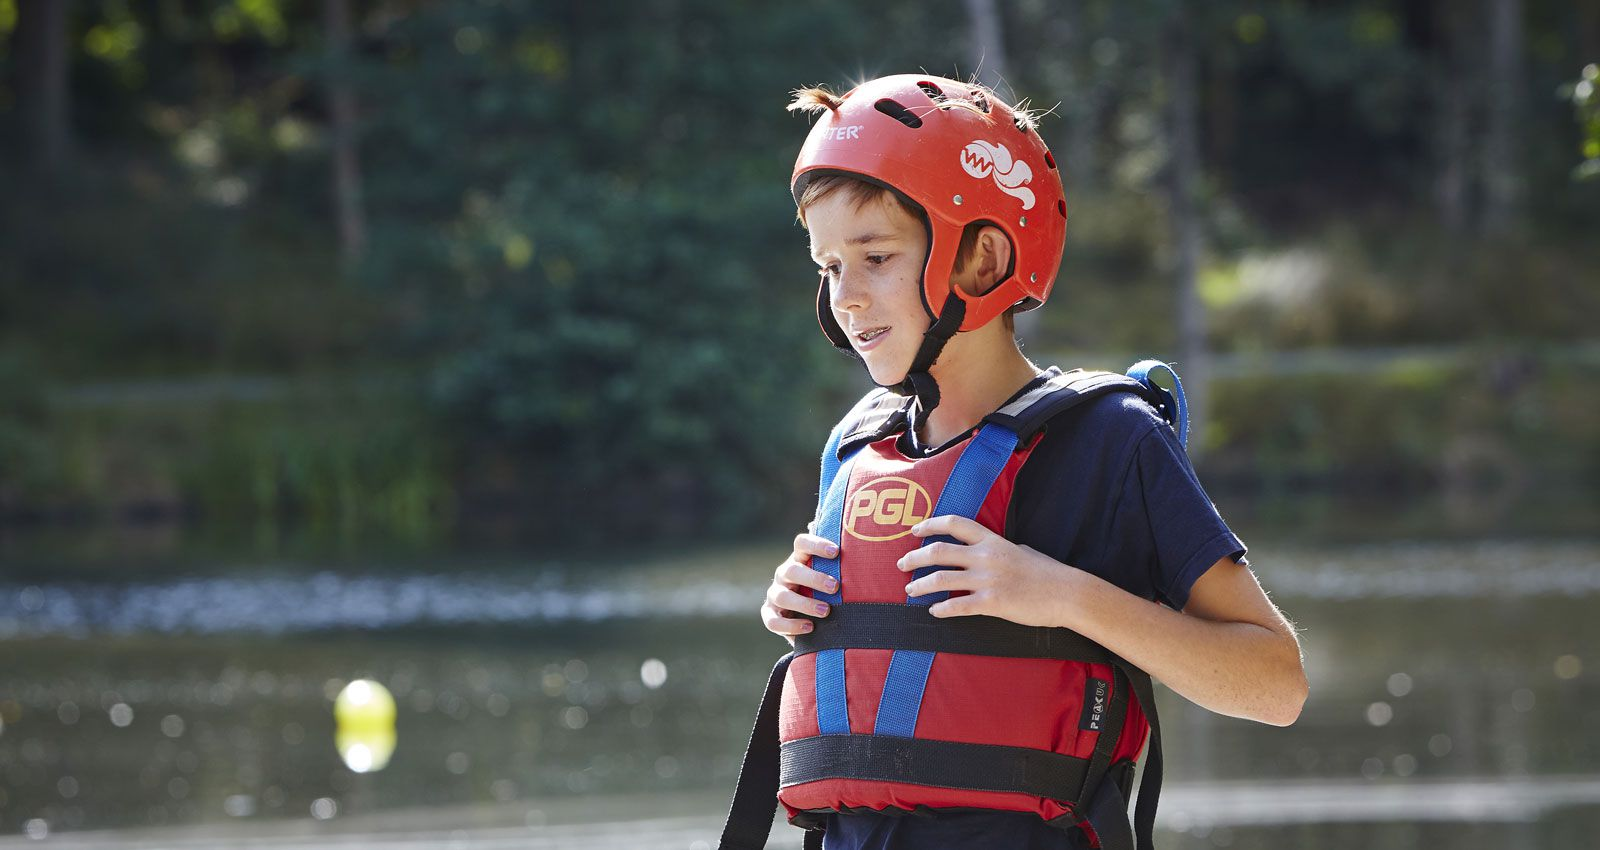 PGL Adventure Holidays - Multi Activity Holidays across the UK and France - 4 night Multi Activity mini breaks at PGL